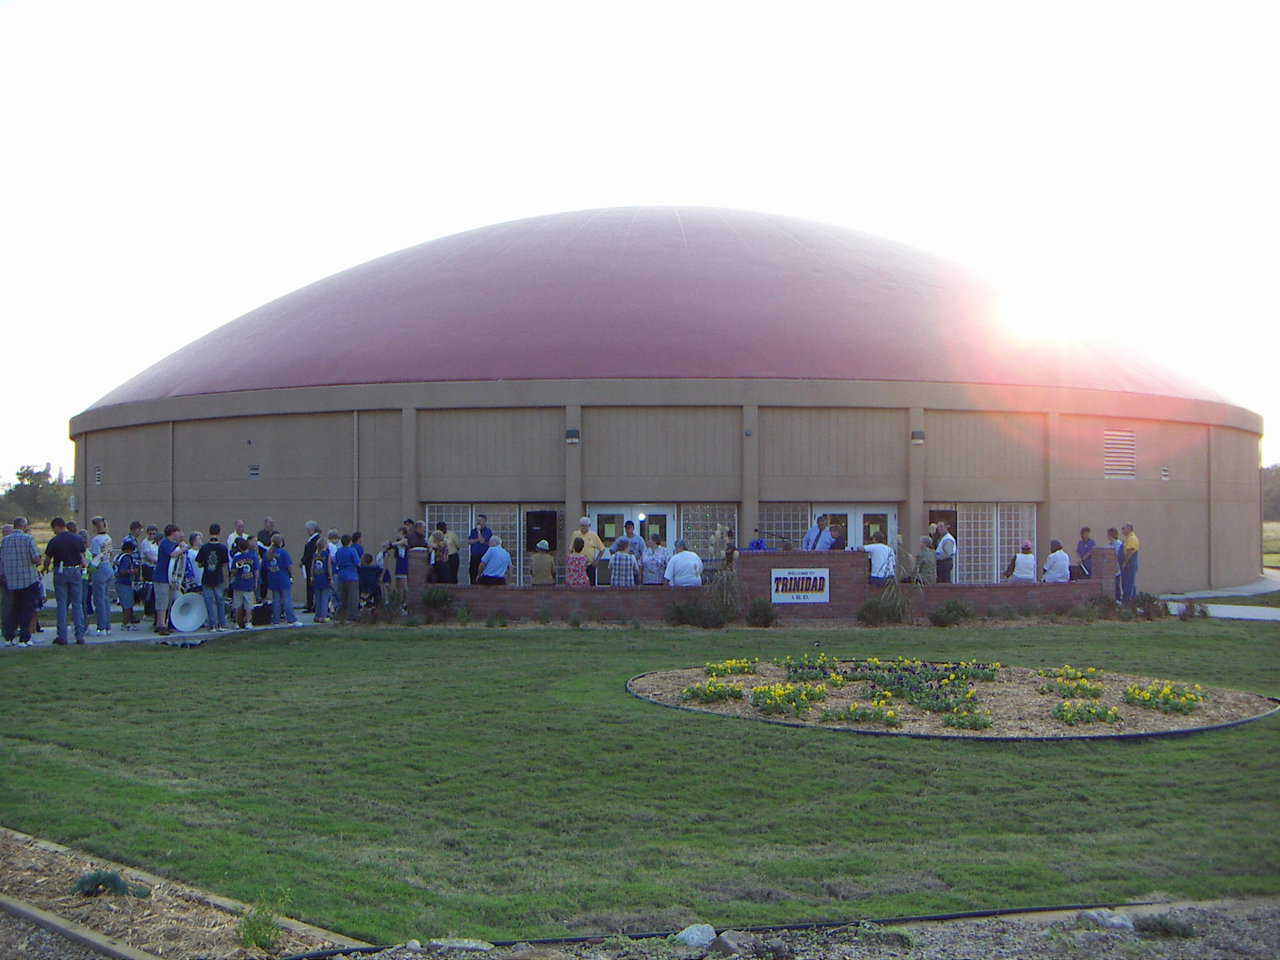 This super energy efficient Monolithic Dome Gymnasium is now a tornado shelter as well.  The power savings will equal the cost of the building in less than 20 years.  The lifetime is expected to be centuries.